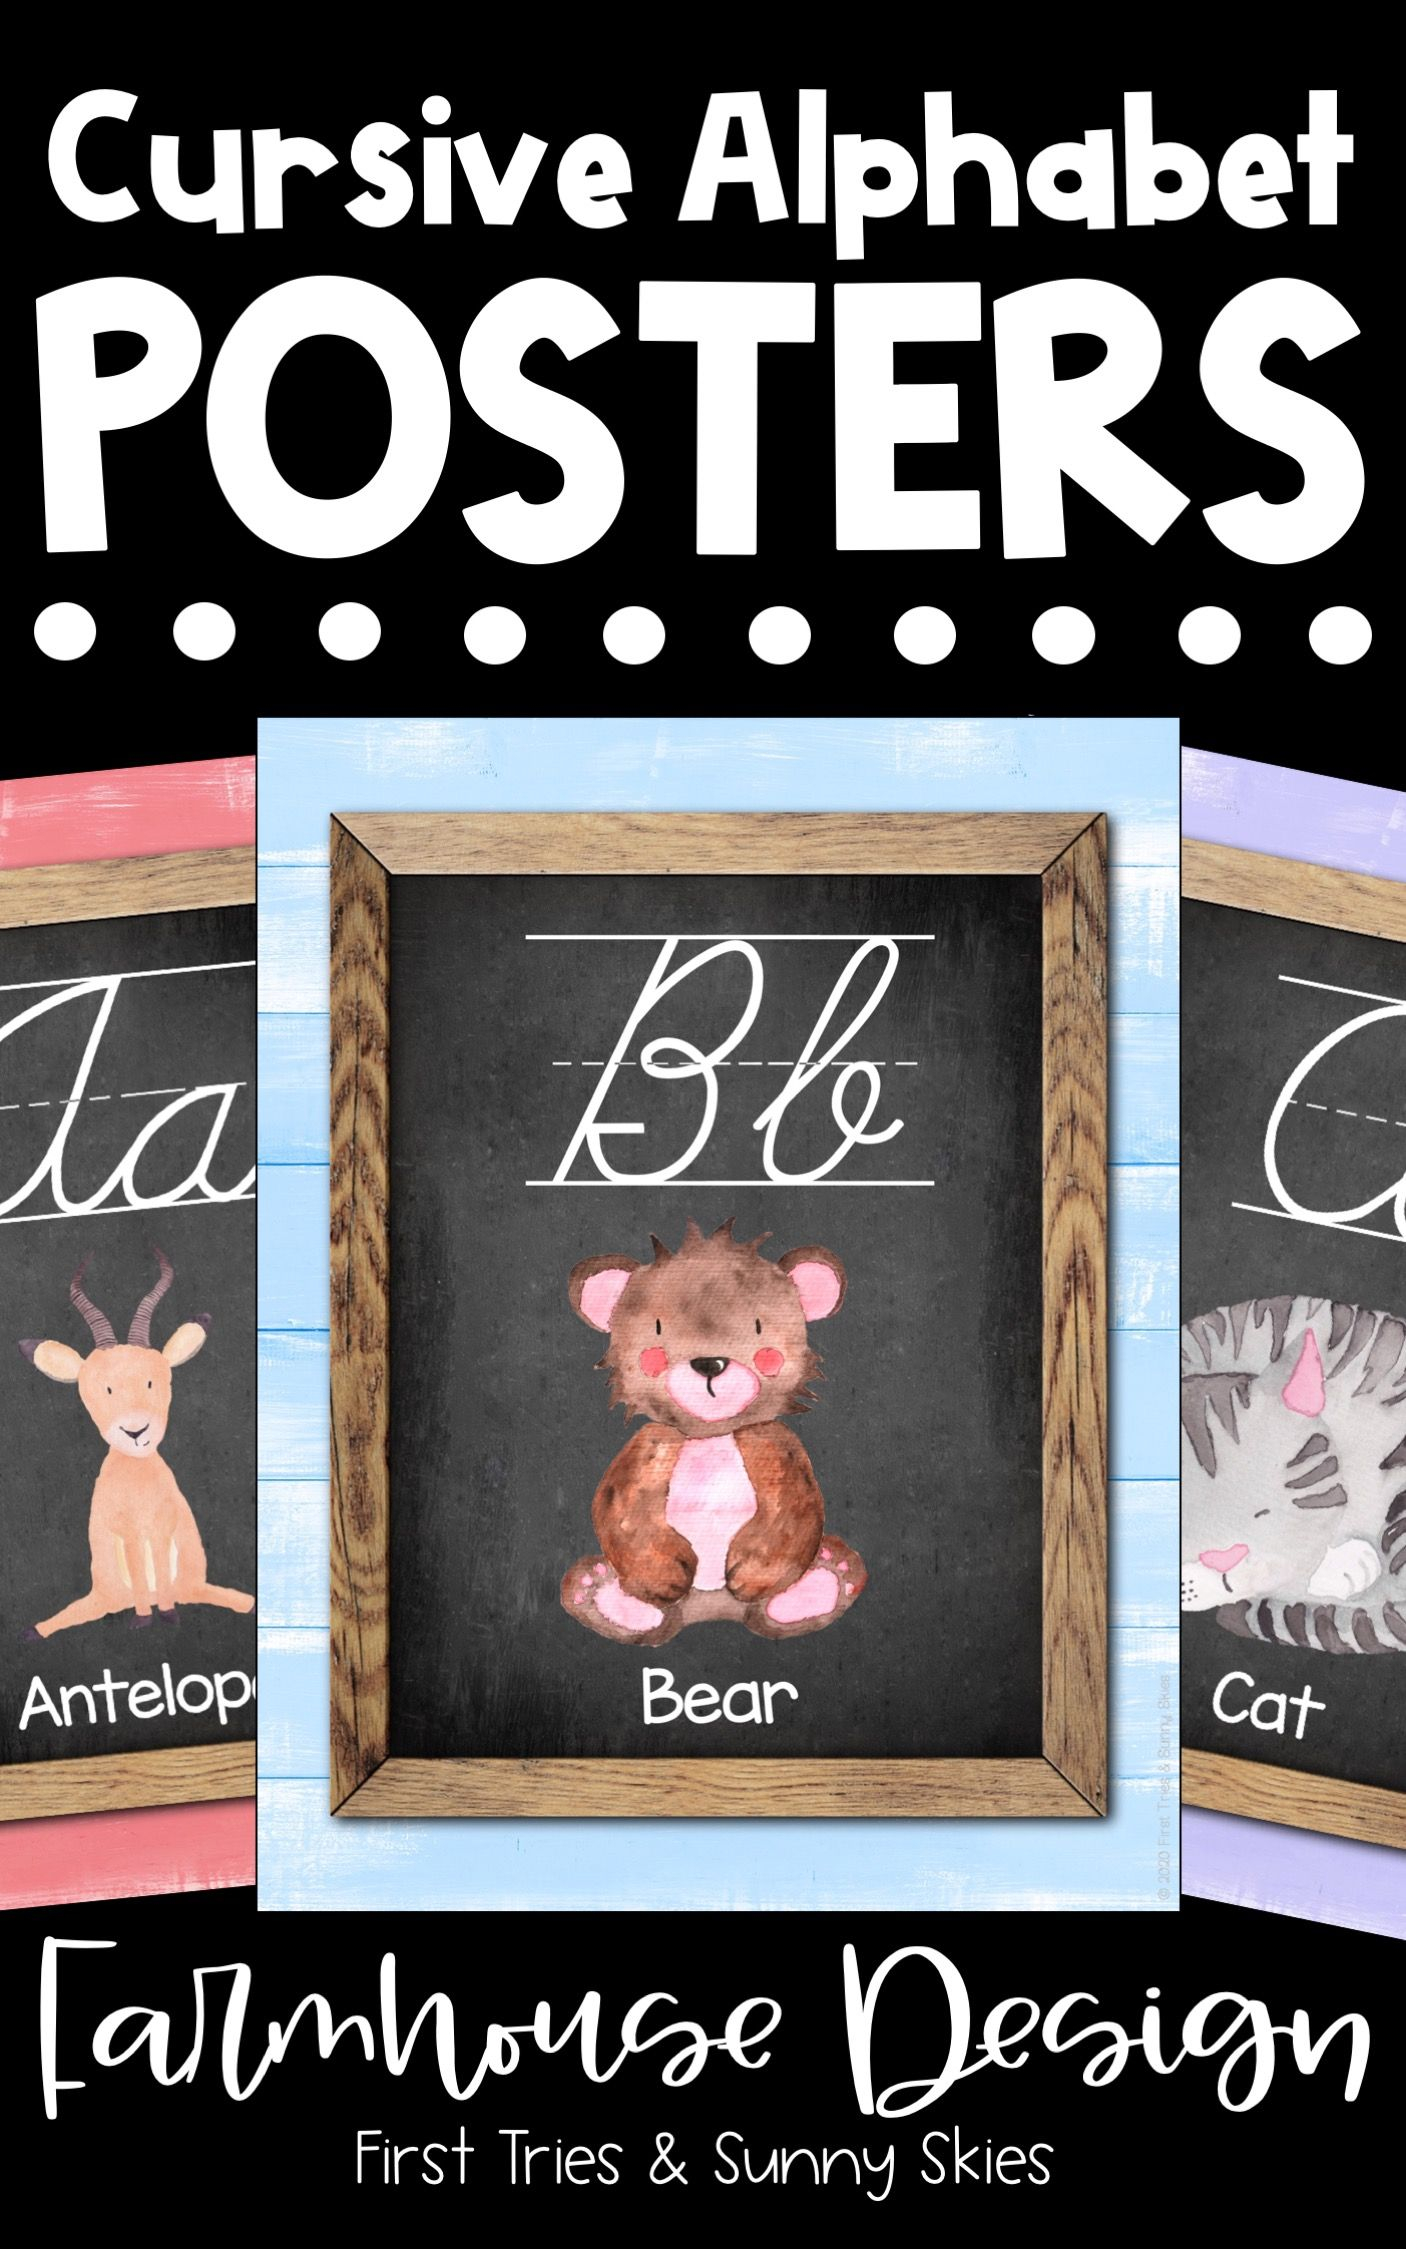 Cursive Abc Posters - Printable Alphabet Posters For